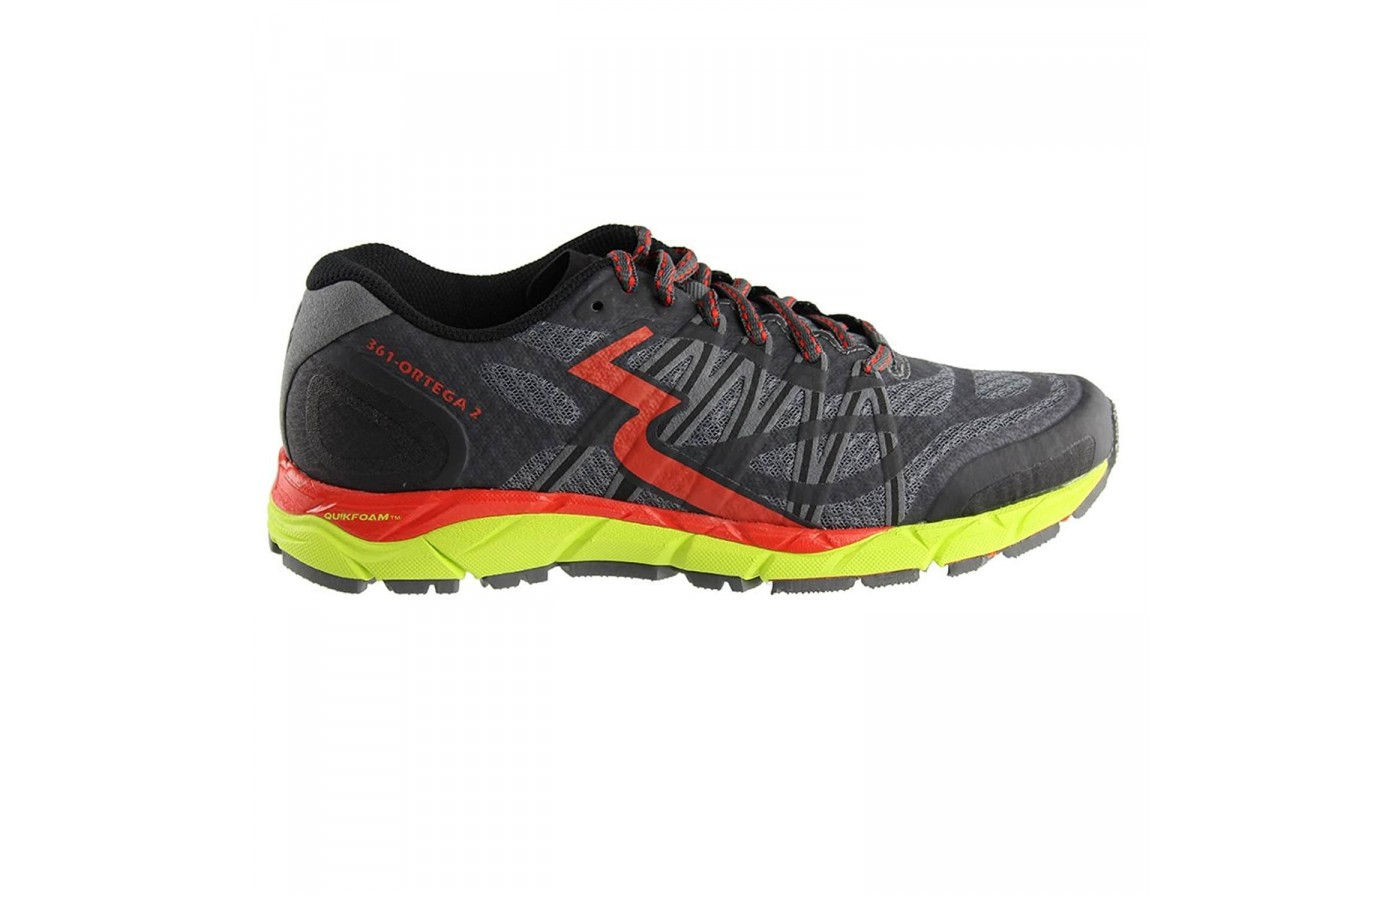 The 361 Ortega 2 has a design that is likely to polarize some fashion-oriented trail runners.